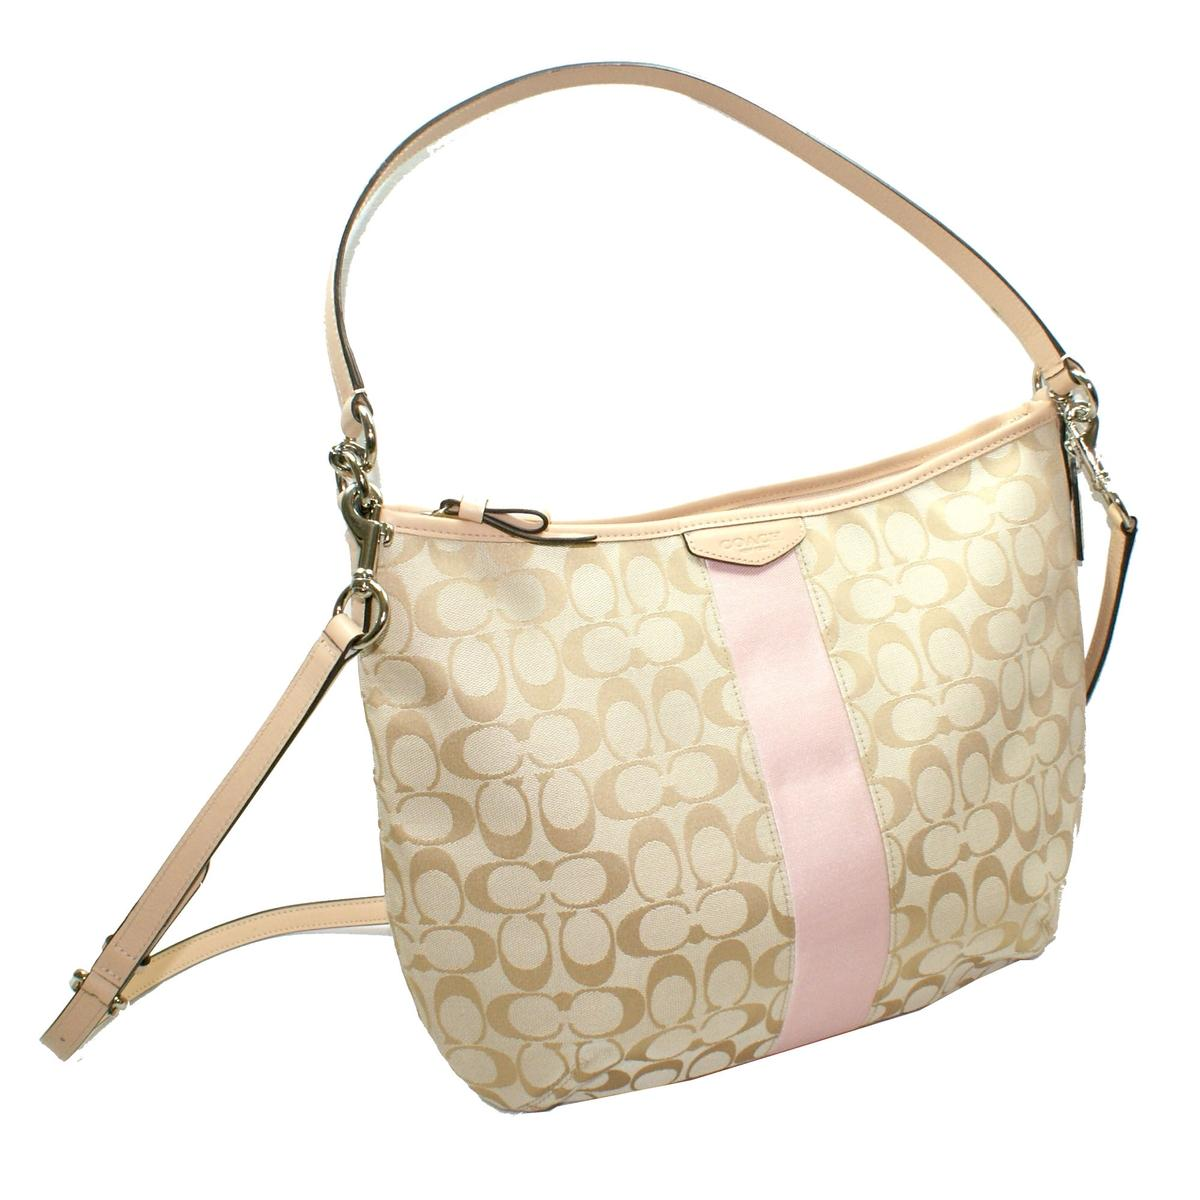 Coach Signature 12 CM Convertible Hobo Bag Light Khaki Pink #29941 ...